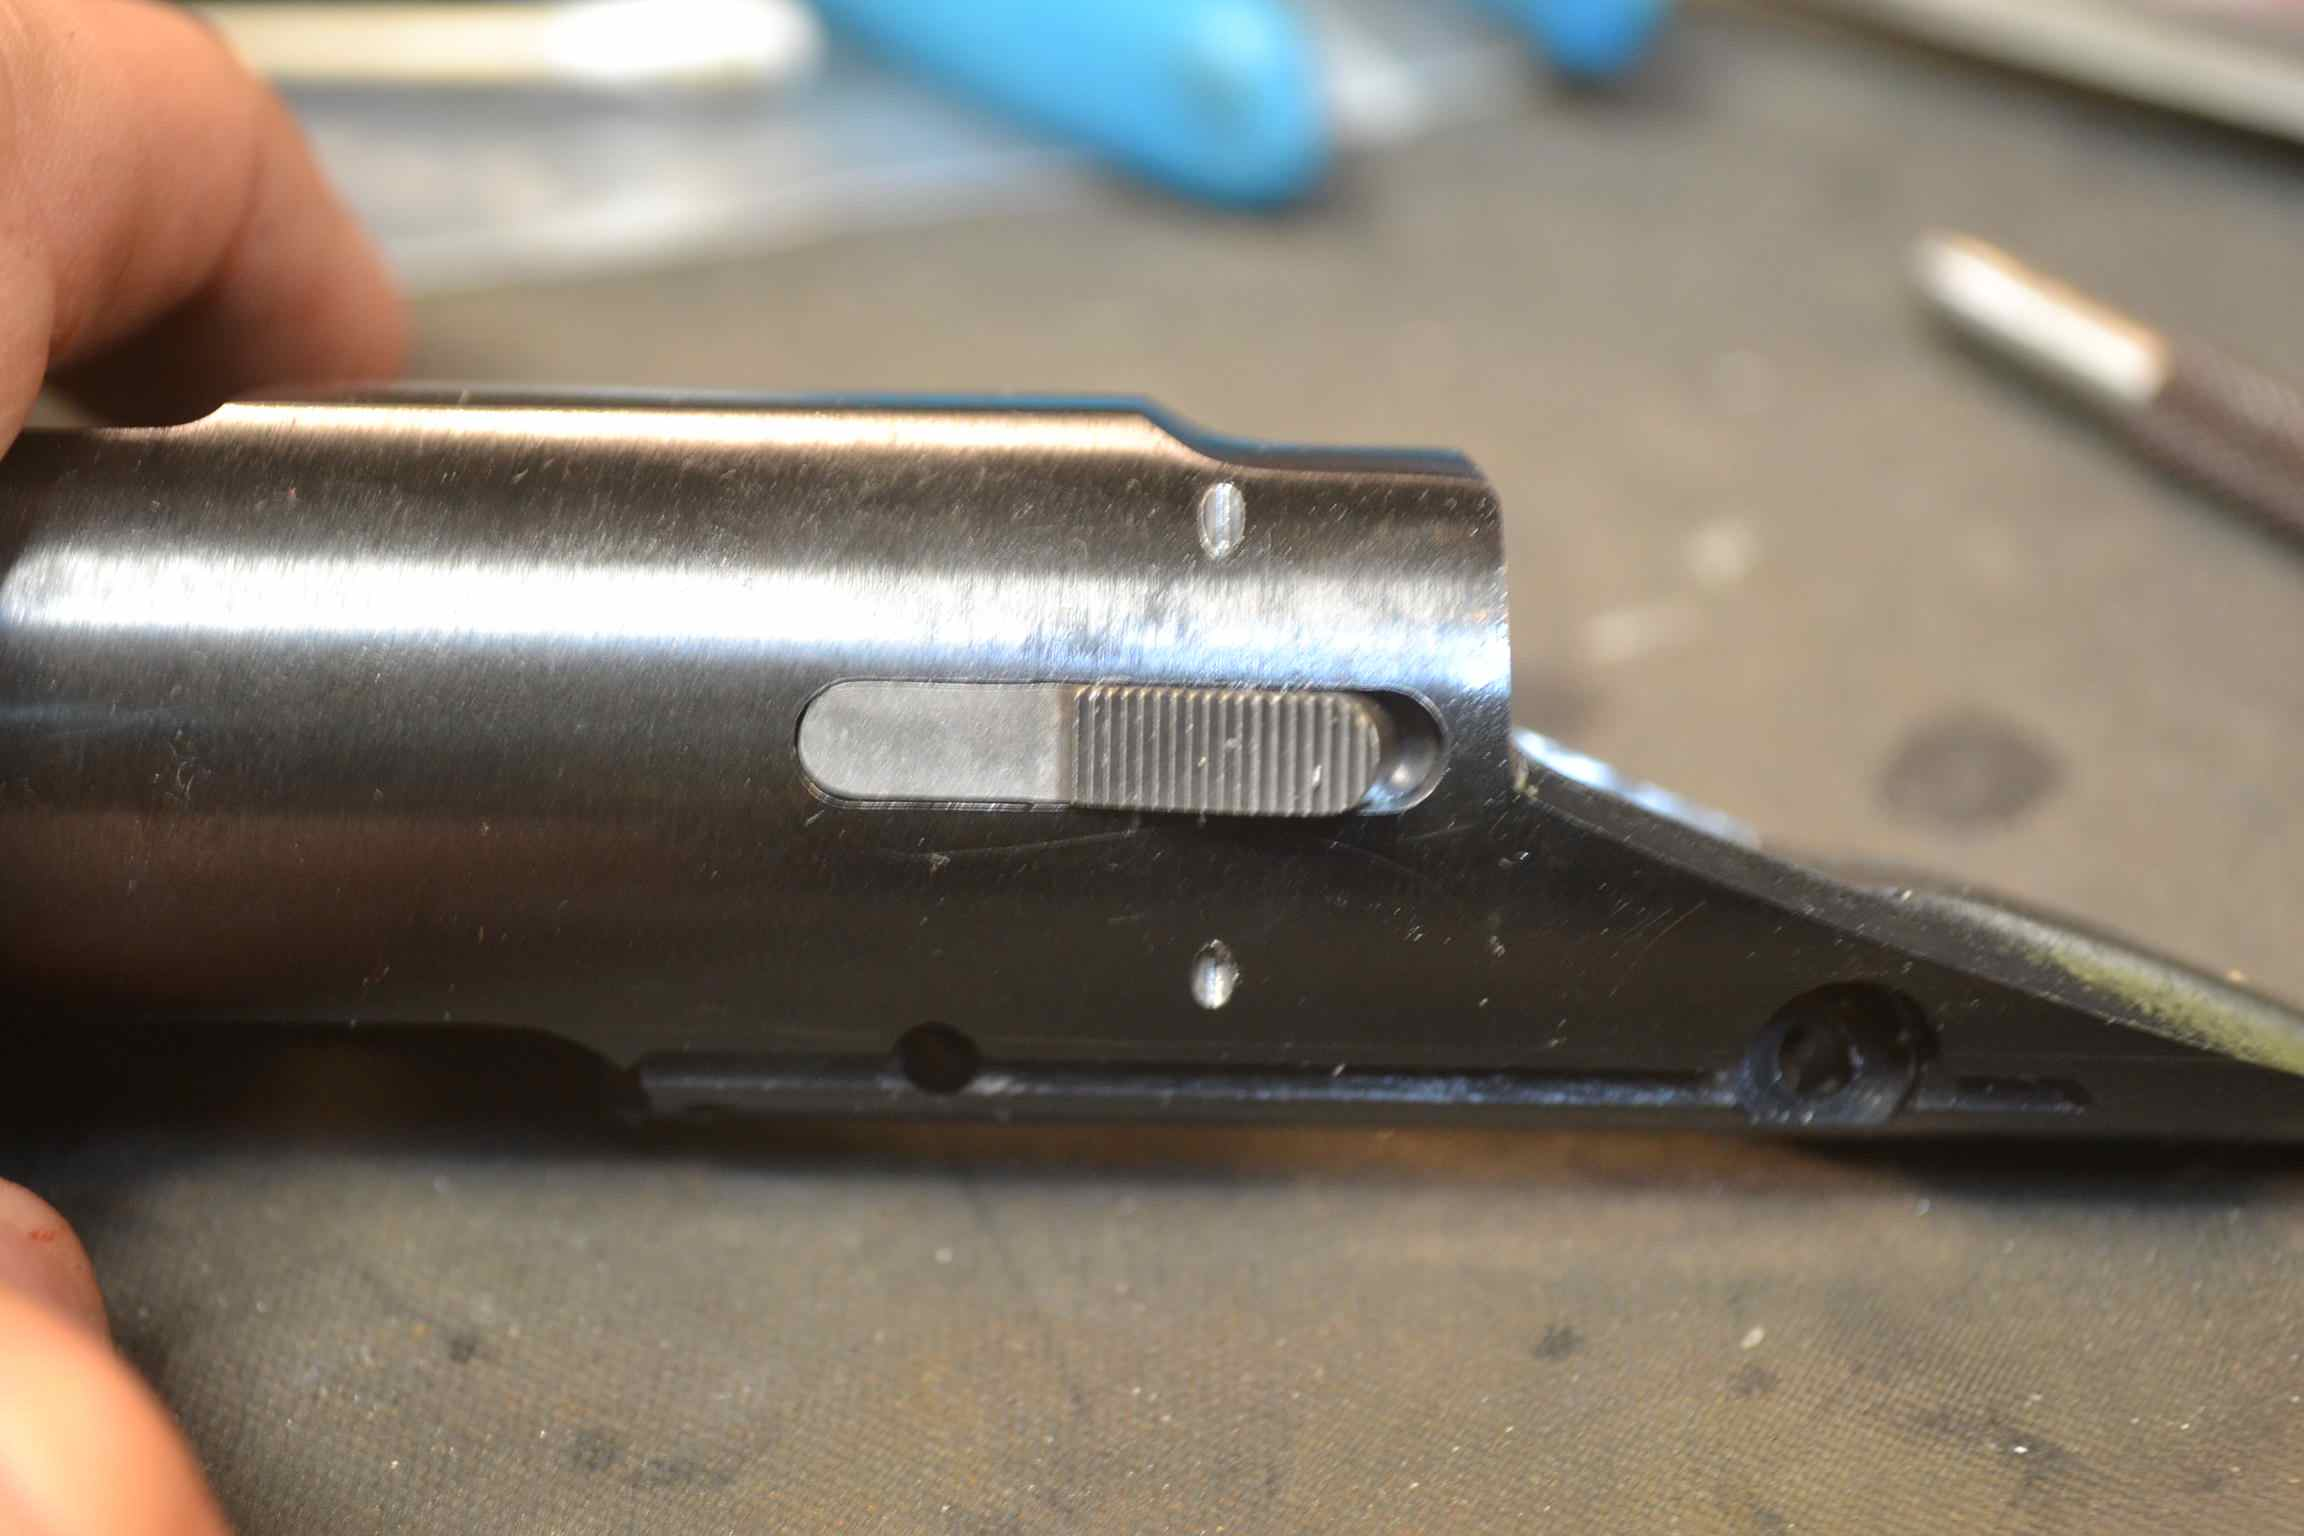 External Remington 700 bolt stop- no step cut installation- method 2